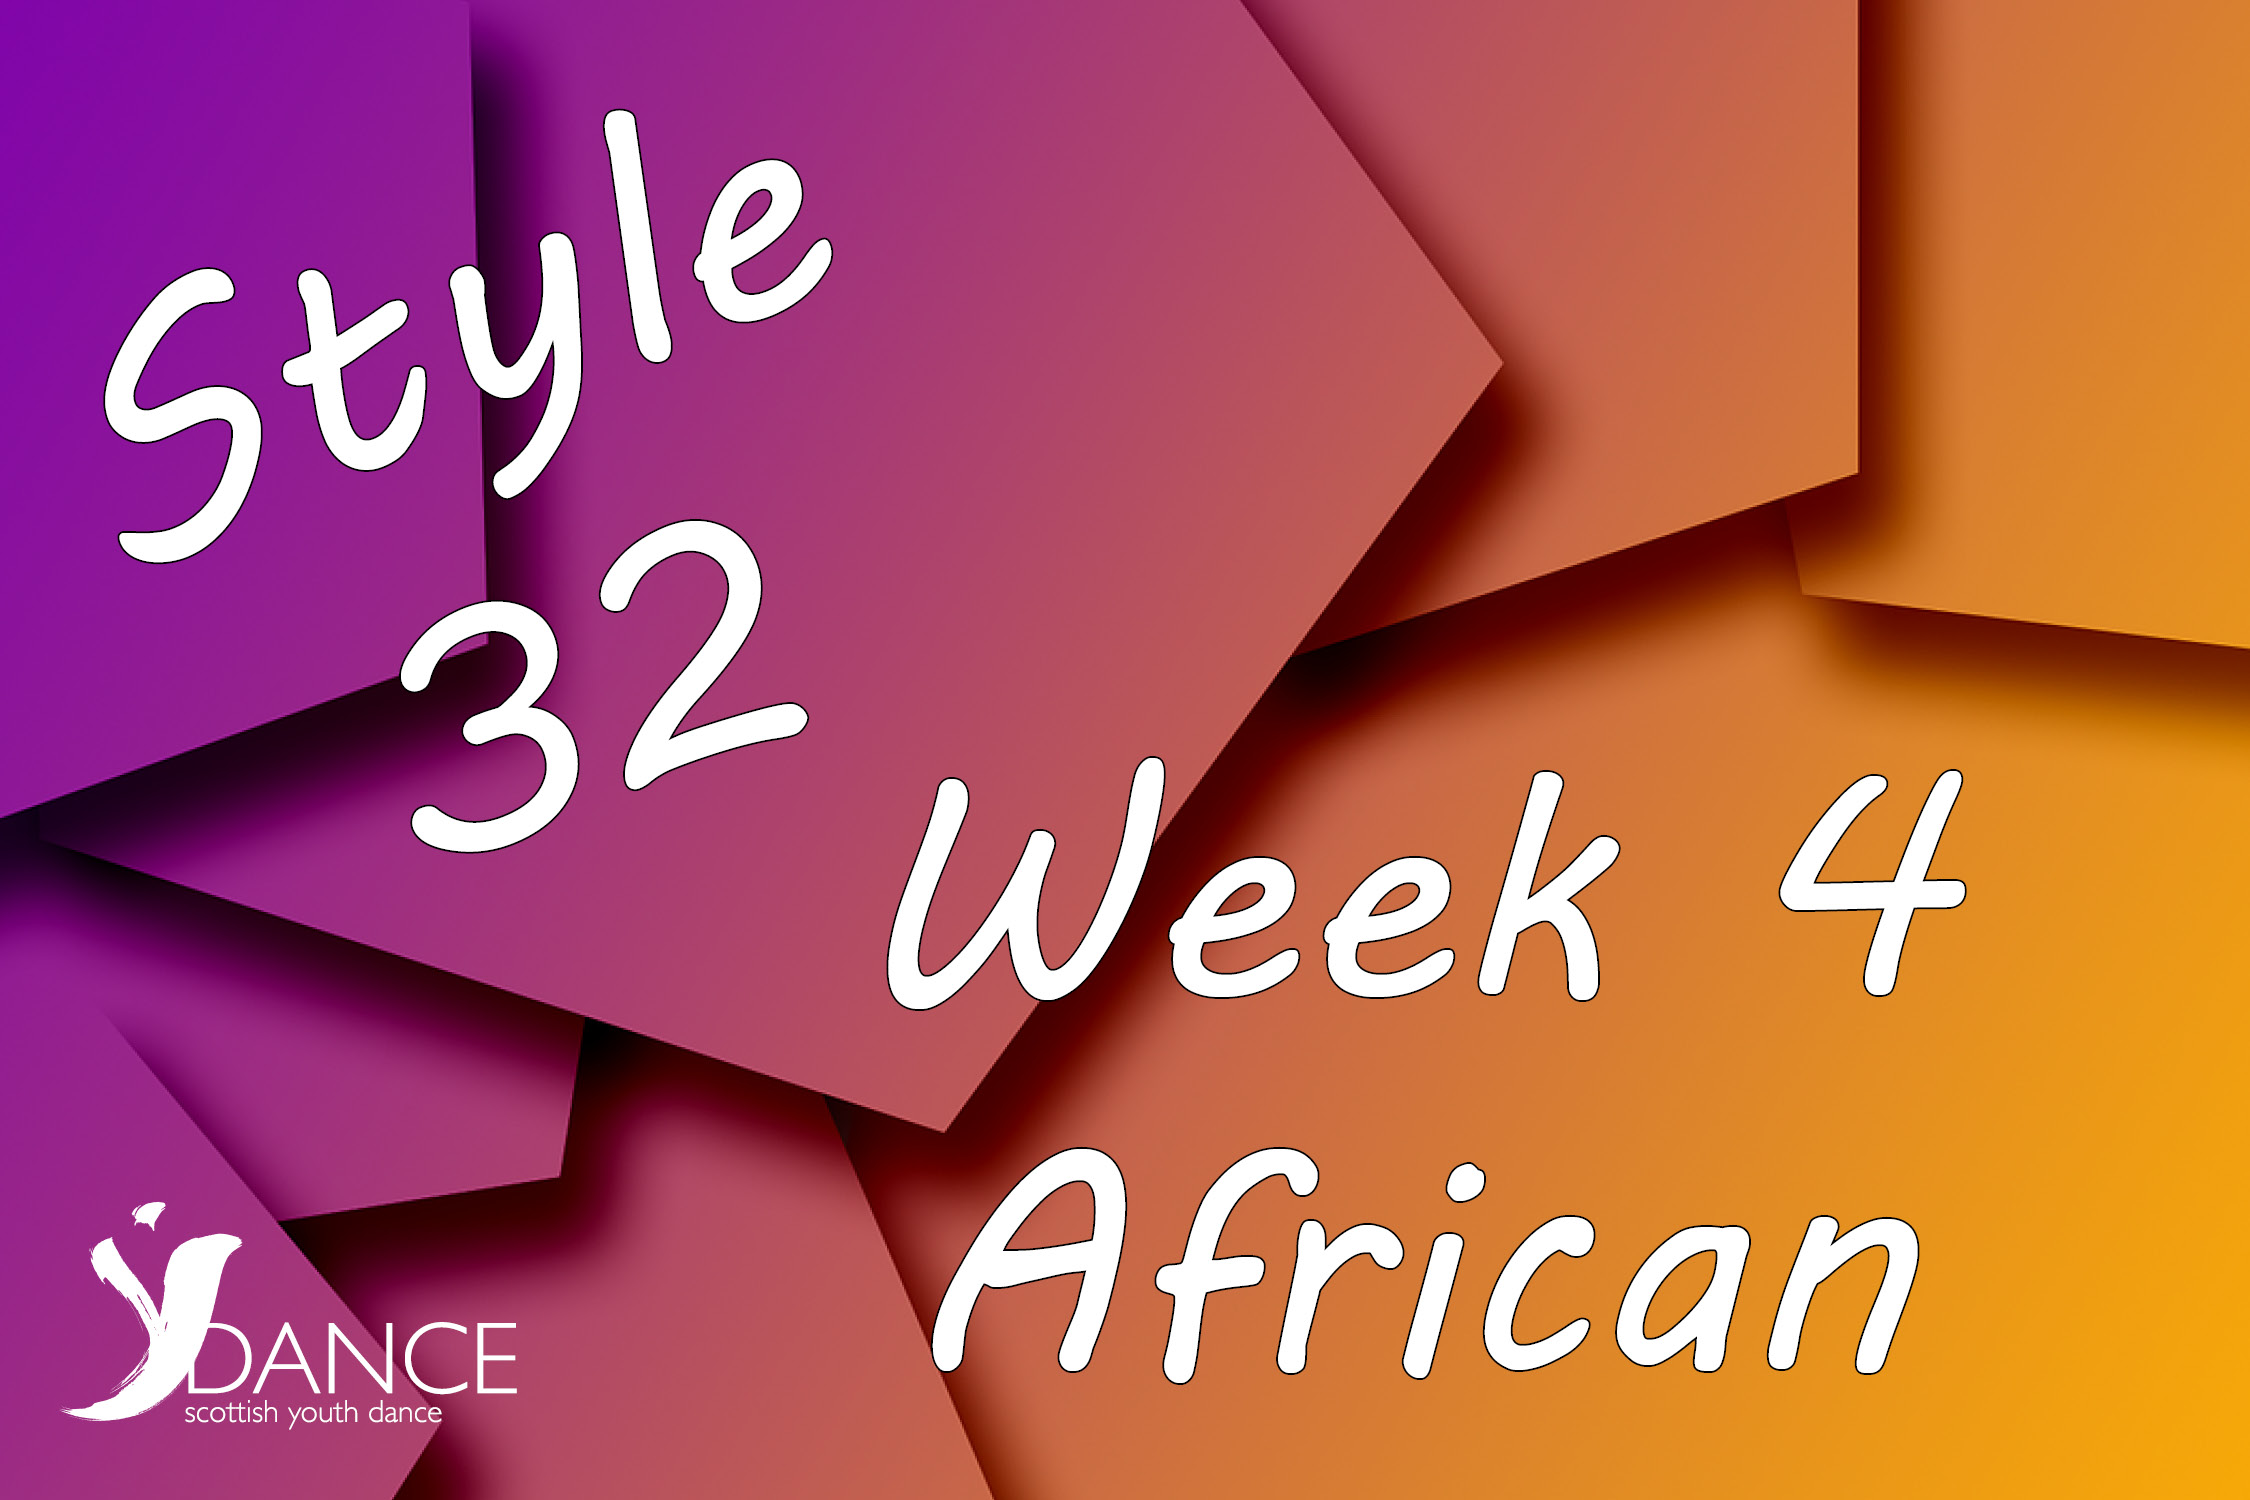 Style32 - Wk4 - African